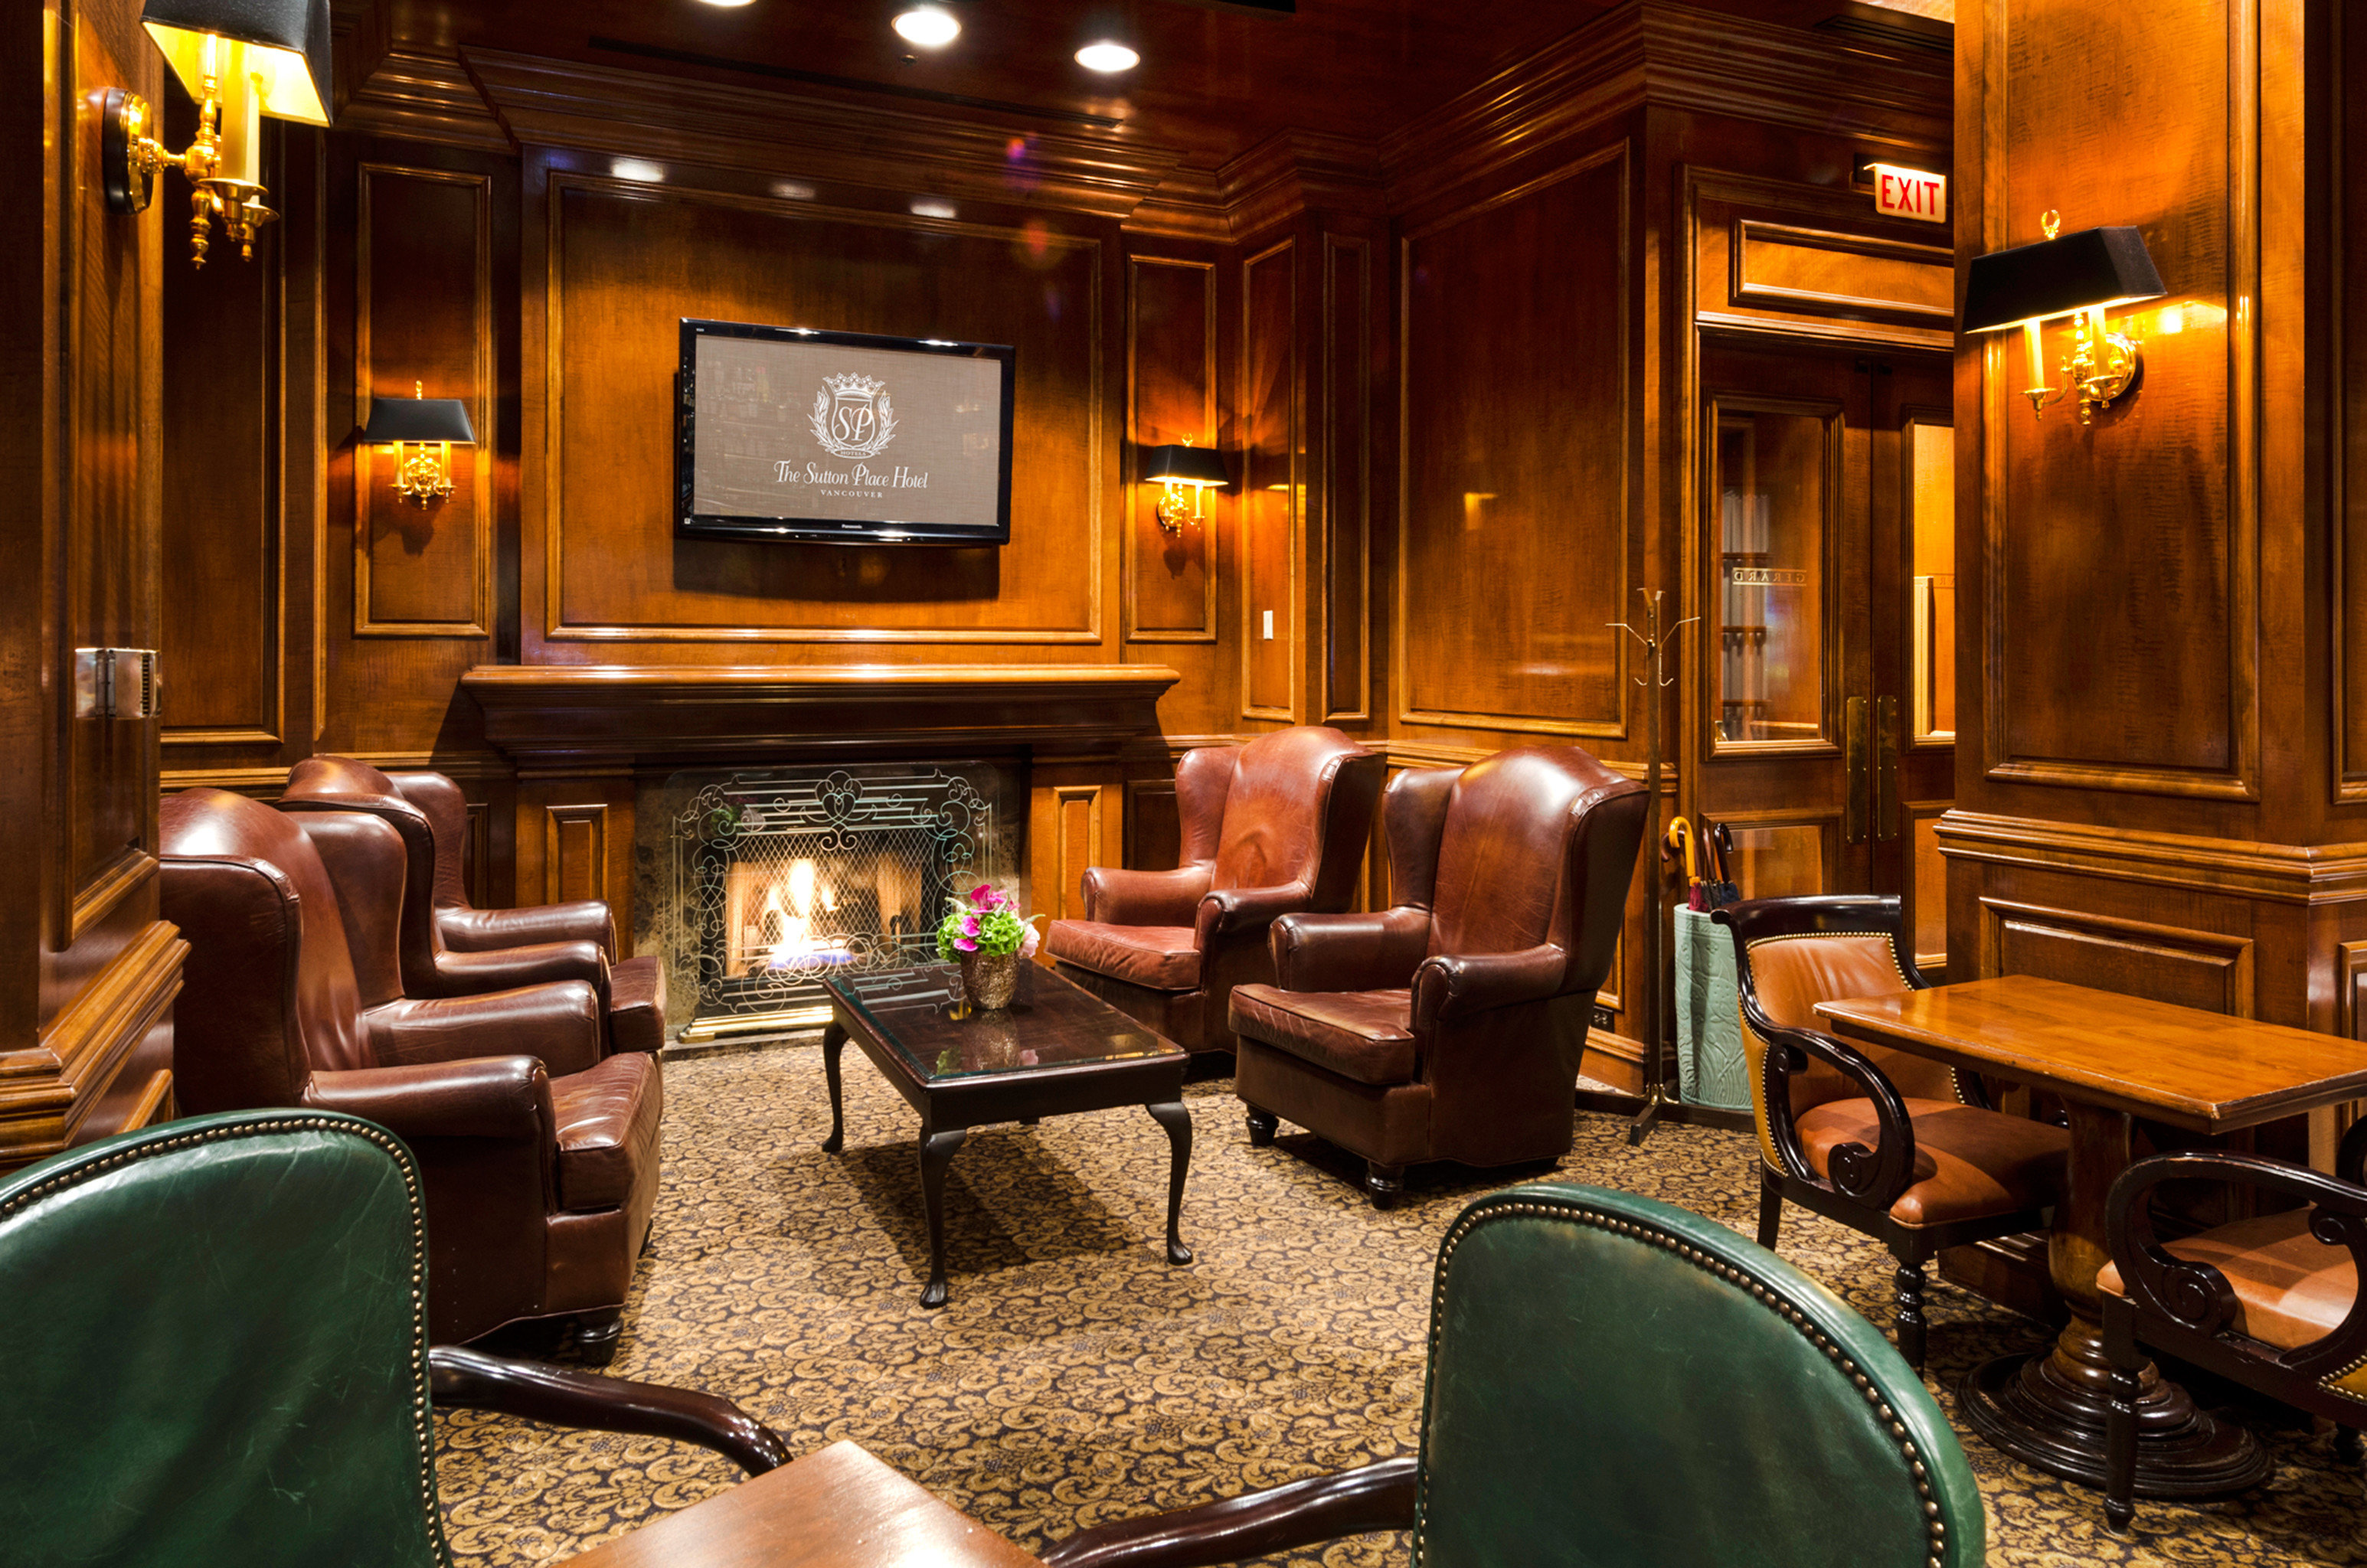 Classic Elegant Fireplace Lounge Luxury chair Lobby recreation room home living room Bar leather